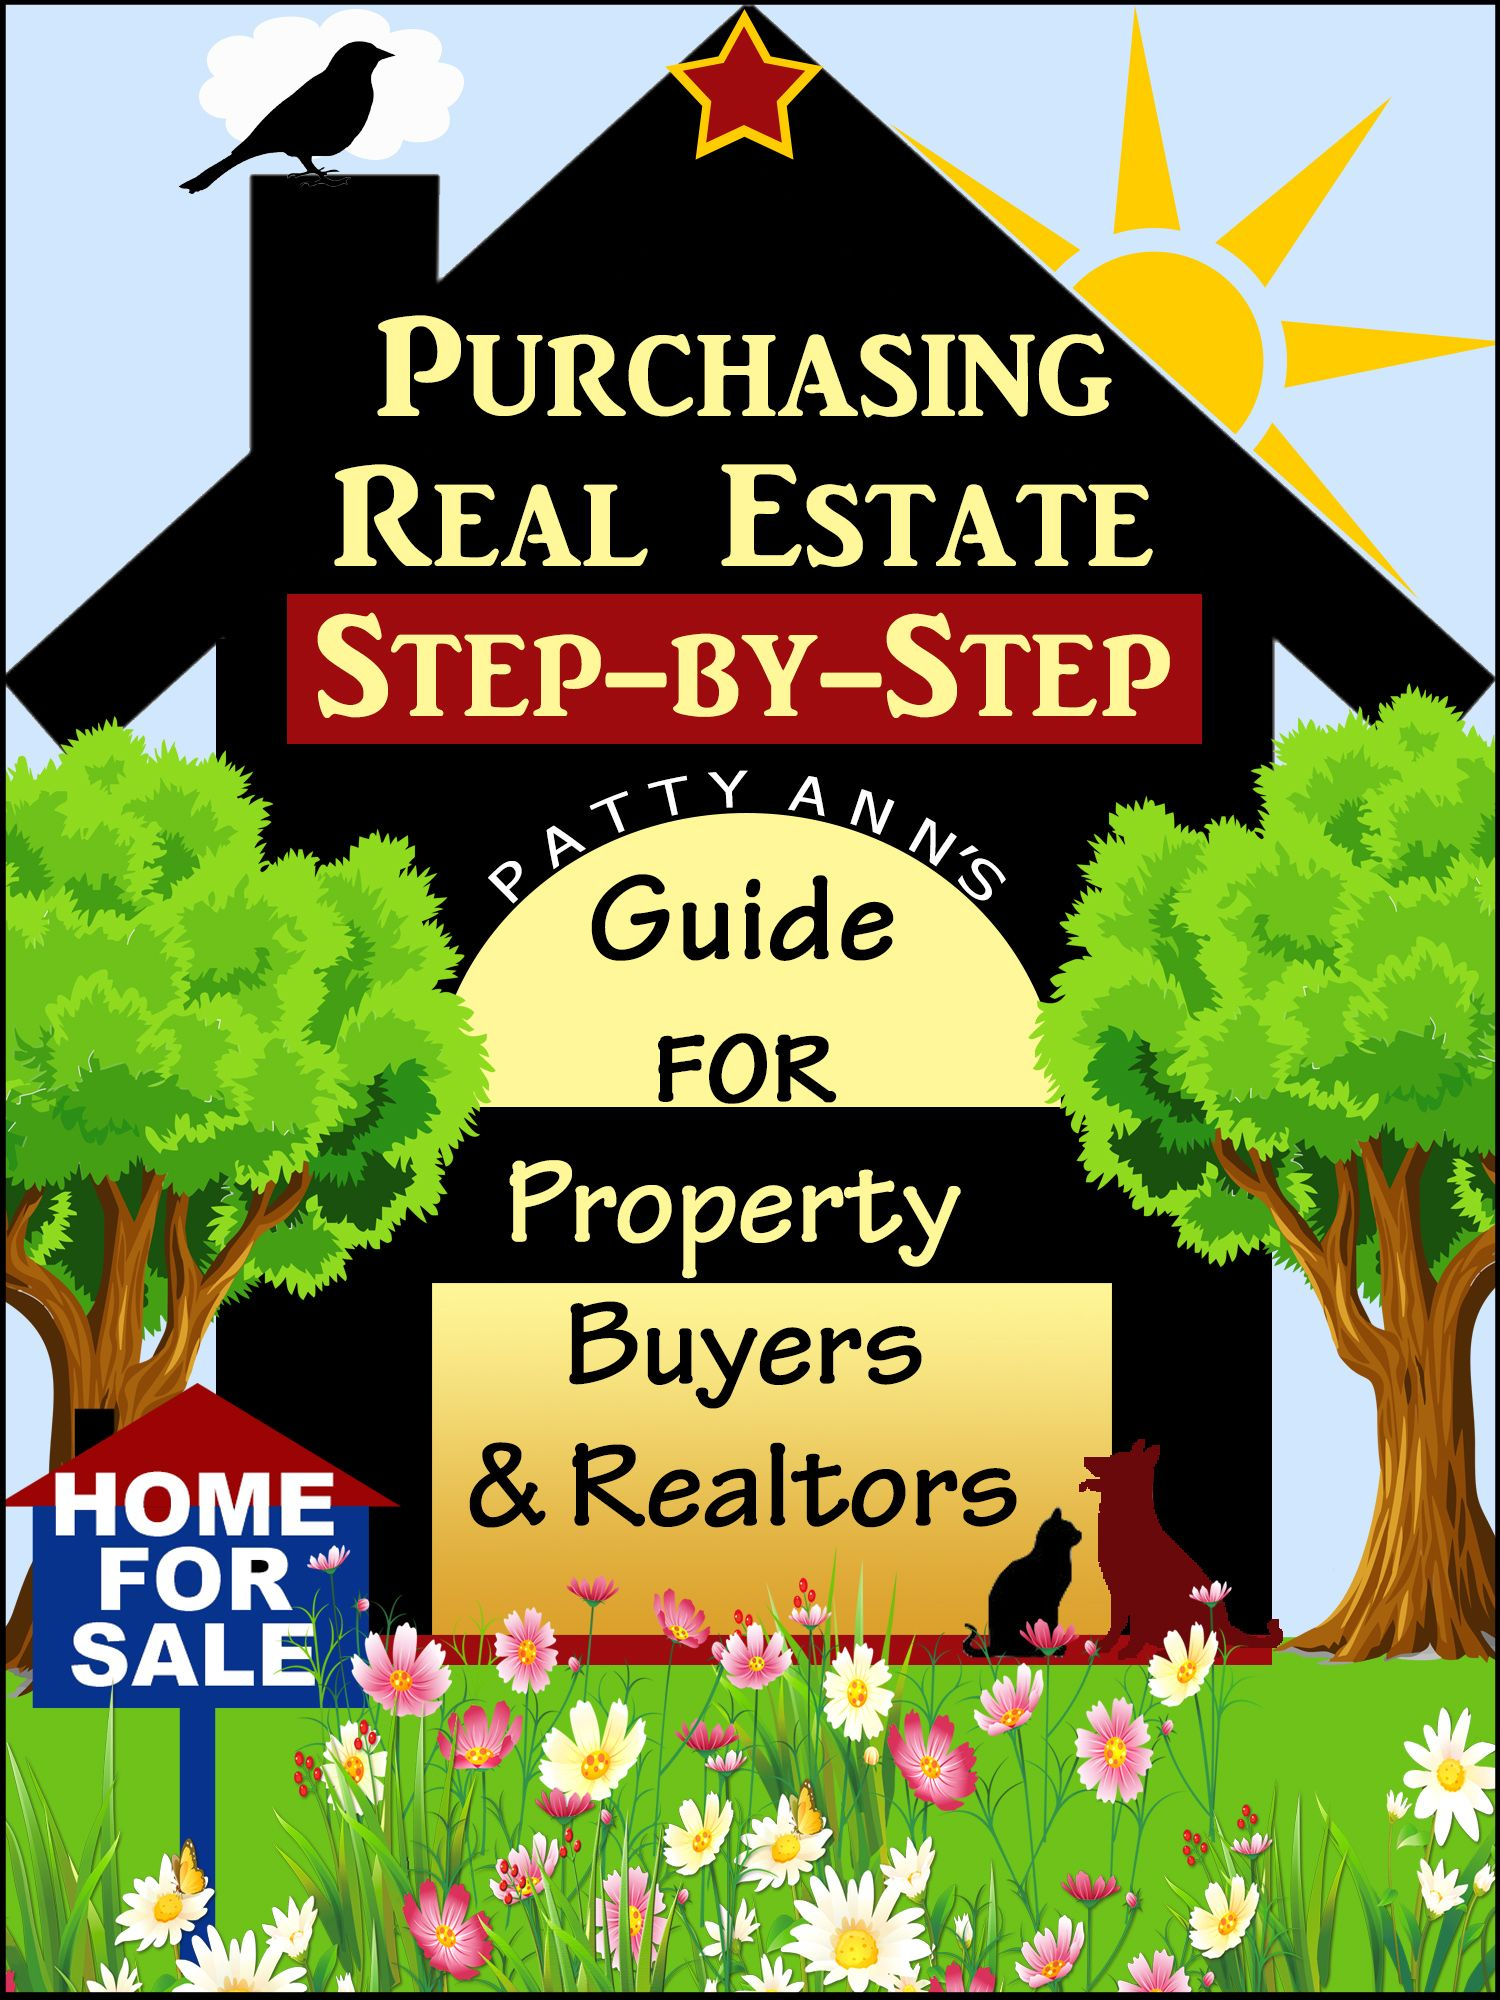 Buyers Real Estate Guide Patty Ann In 2020 Real Estate Guide Real Estate Love Book